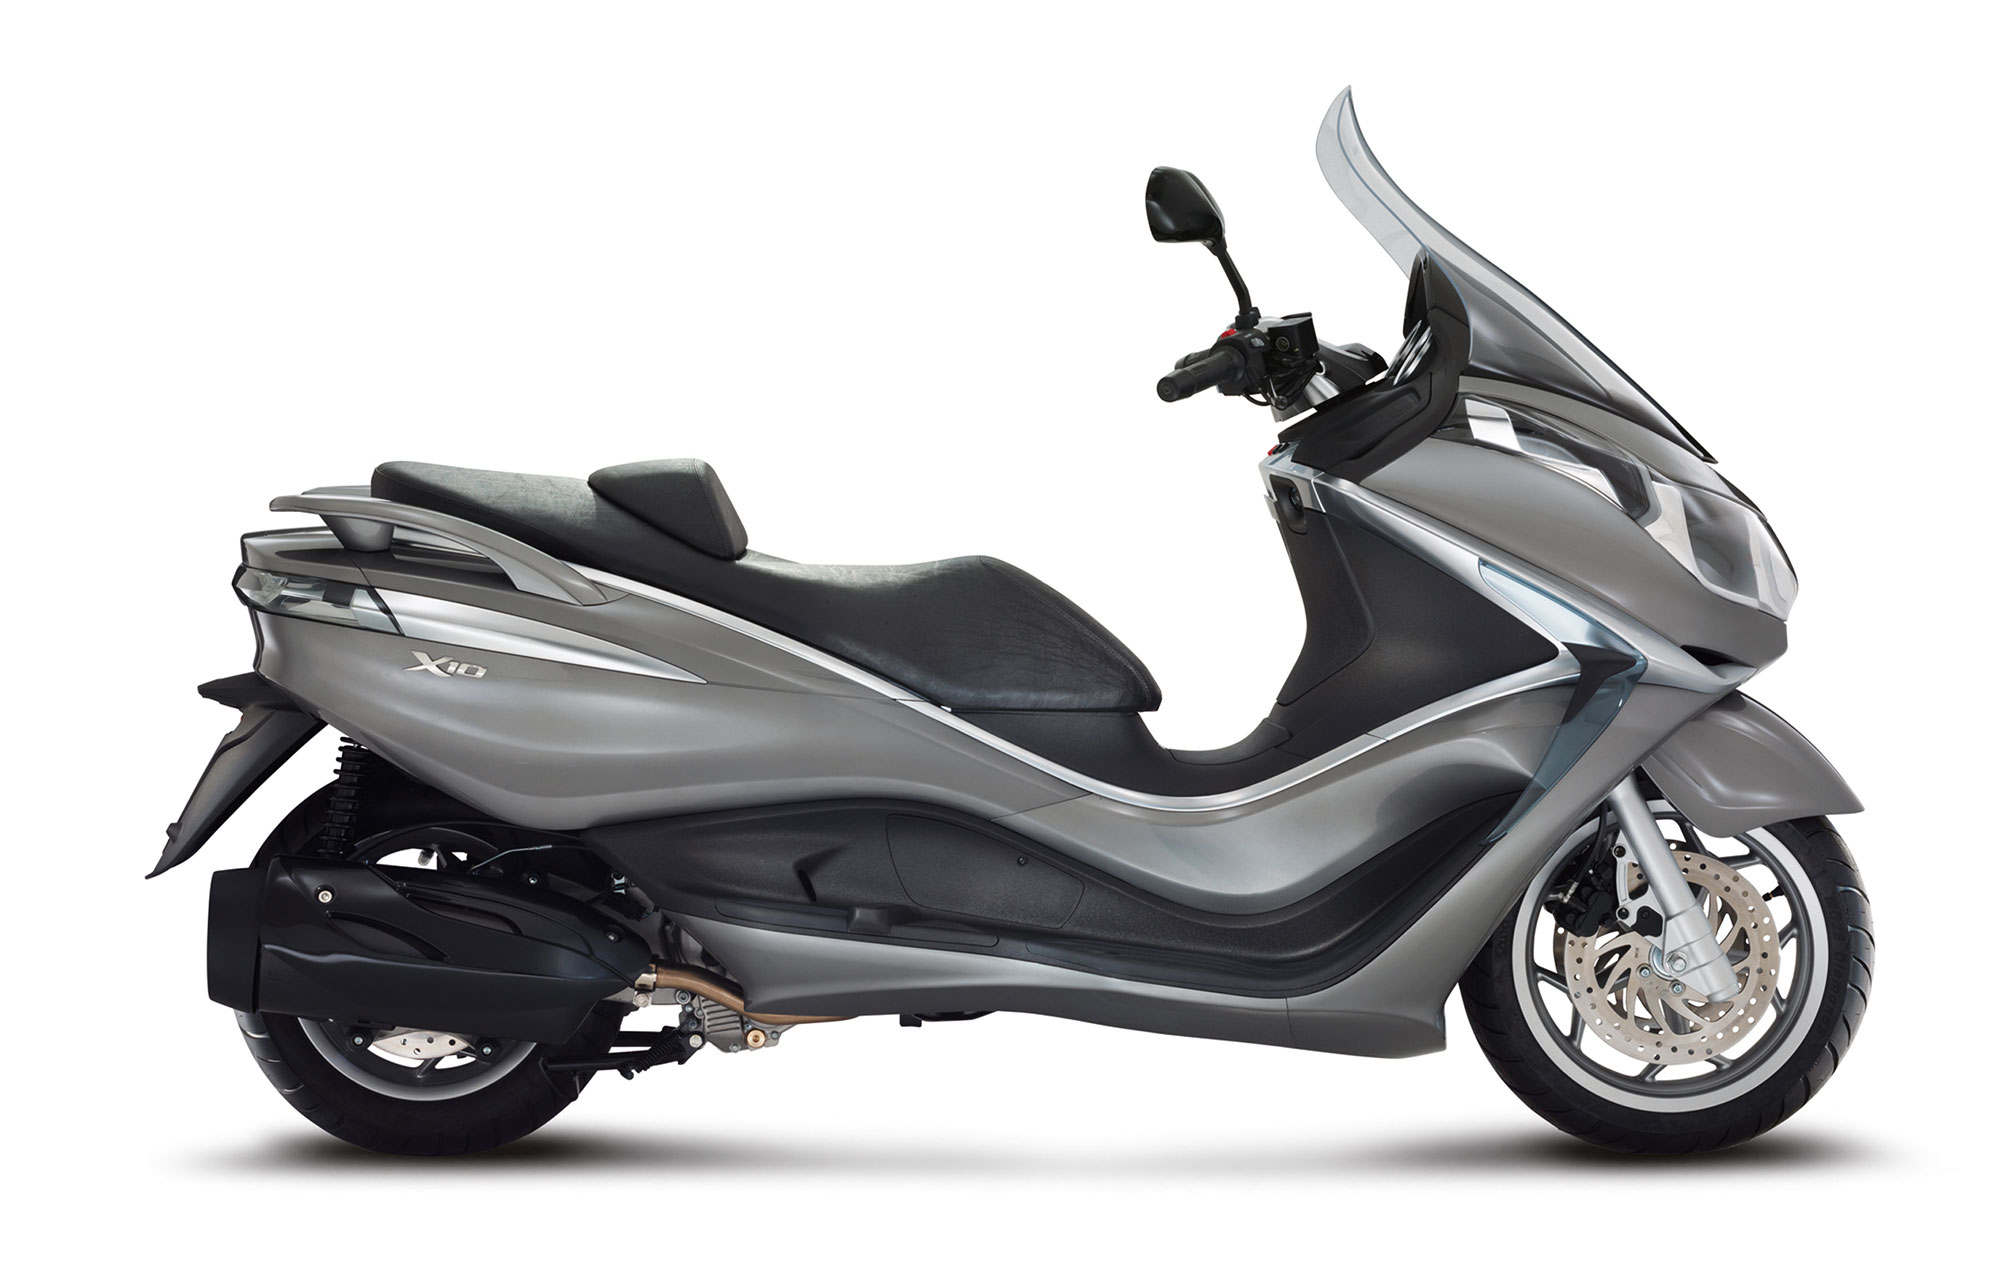 2013 piaggio x10 350 scooter review. Black Bedroom Furniture Sets. Home Design Ideas